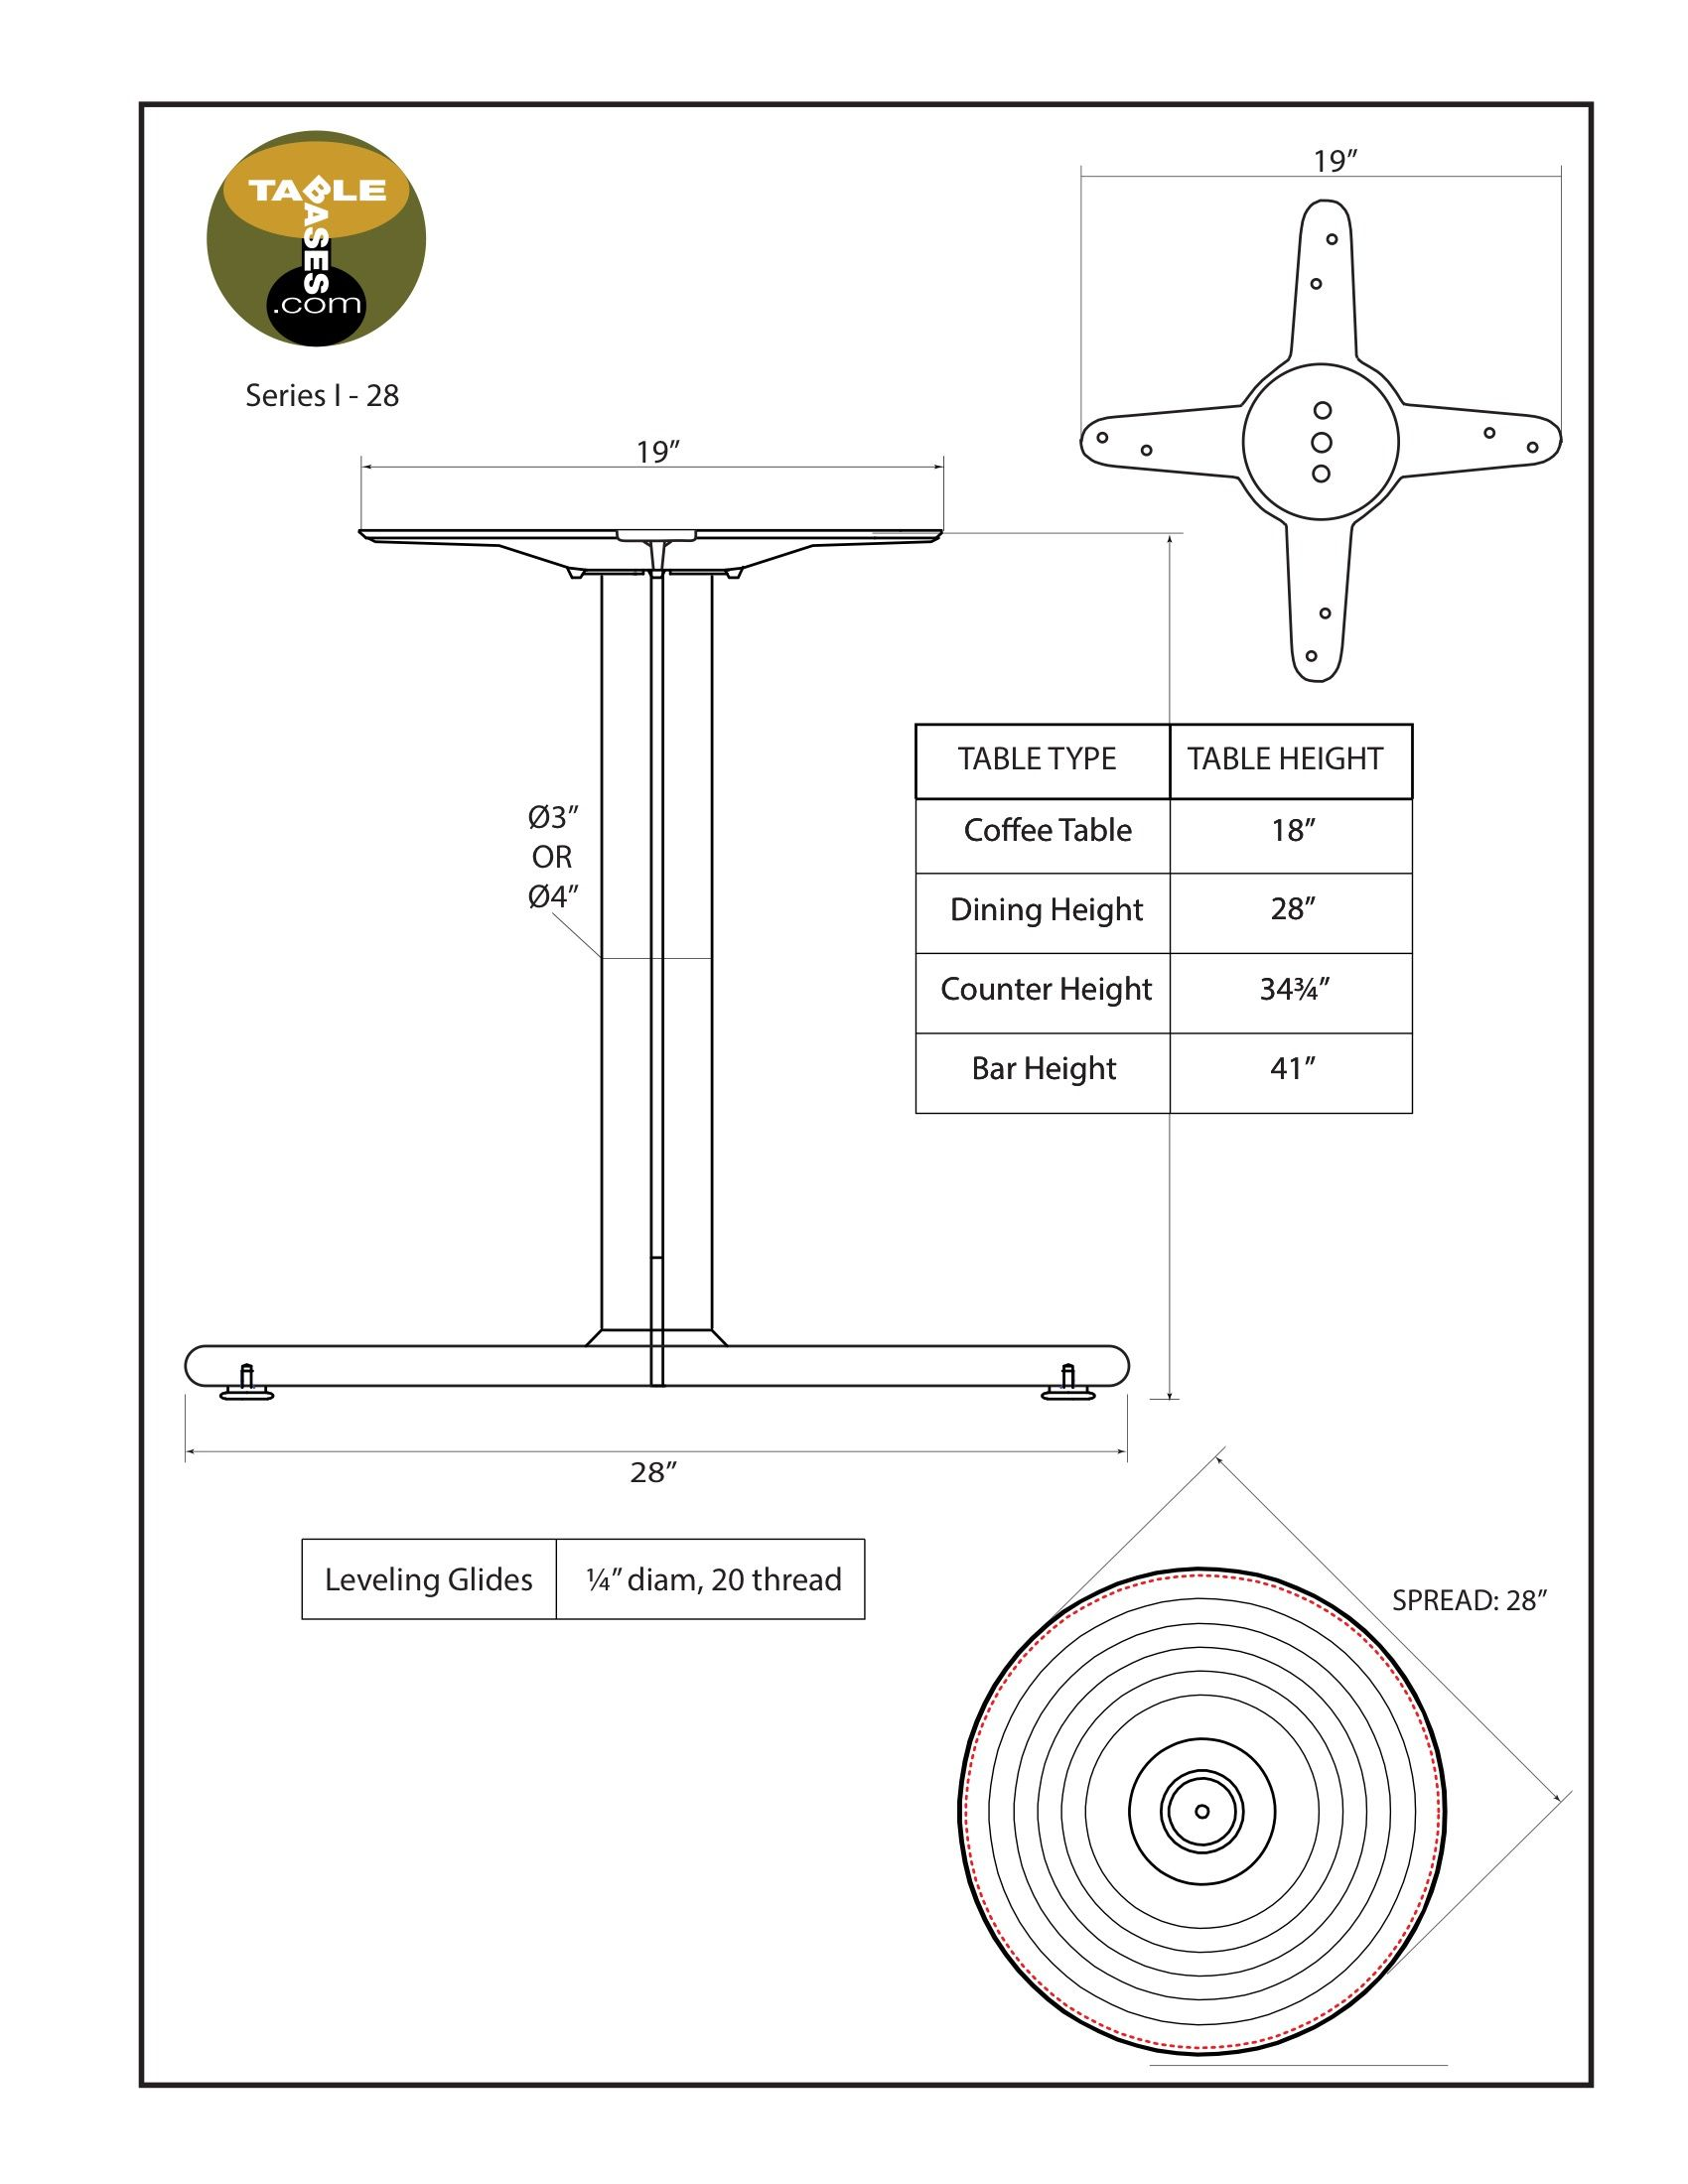 I28 Black Table Base - Specifications